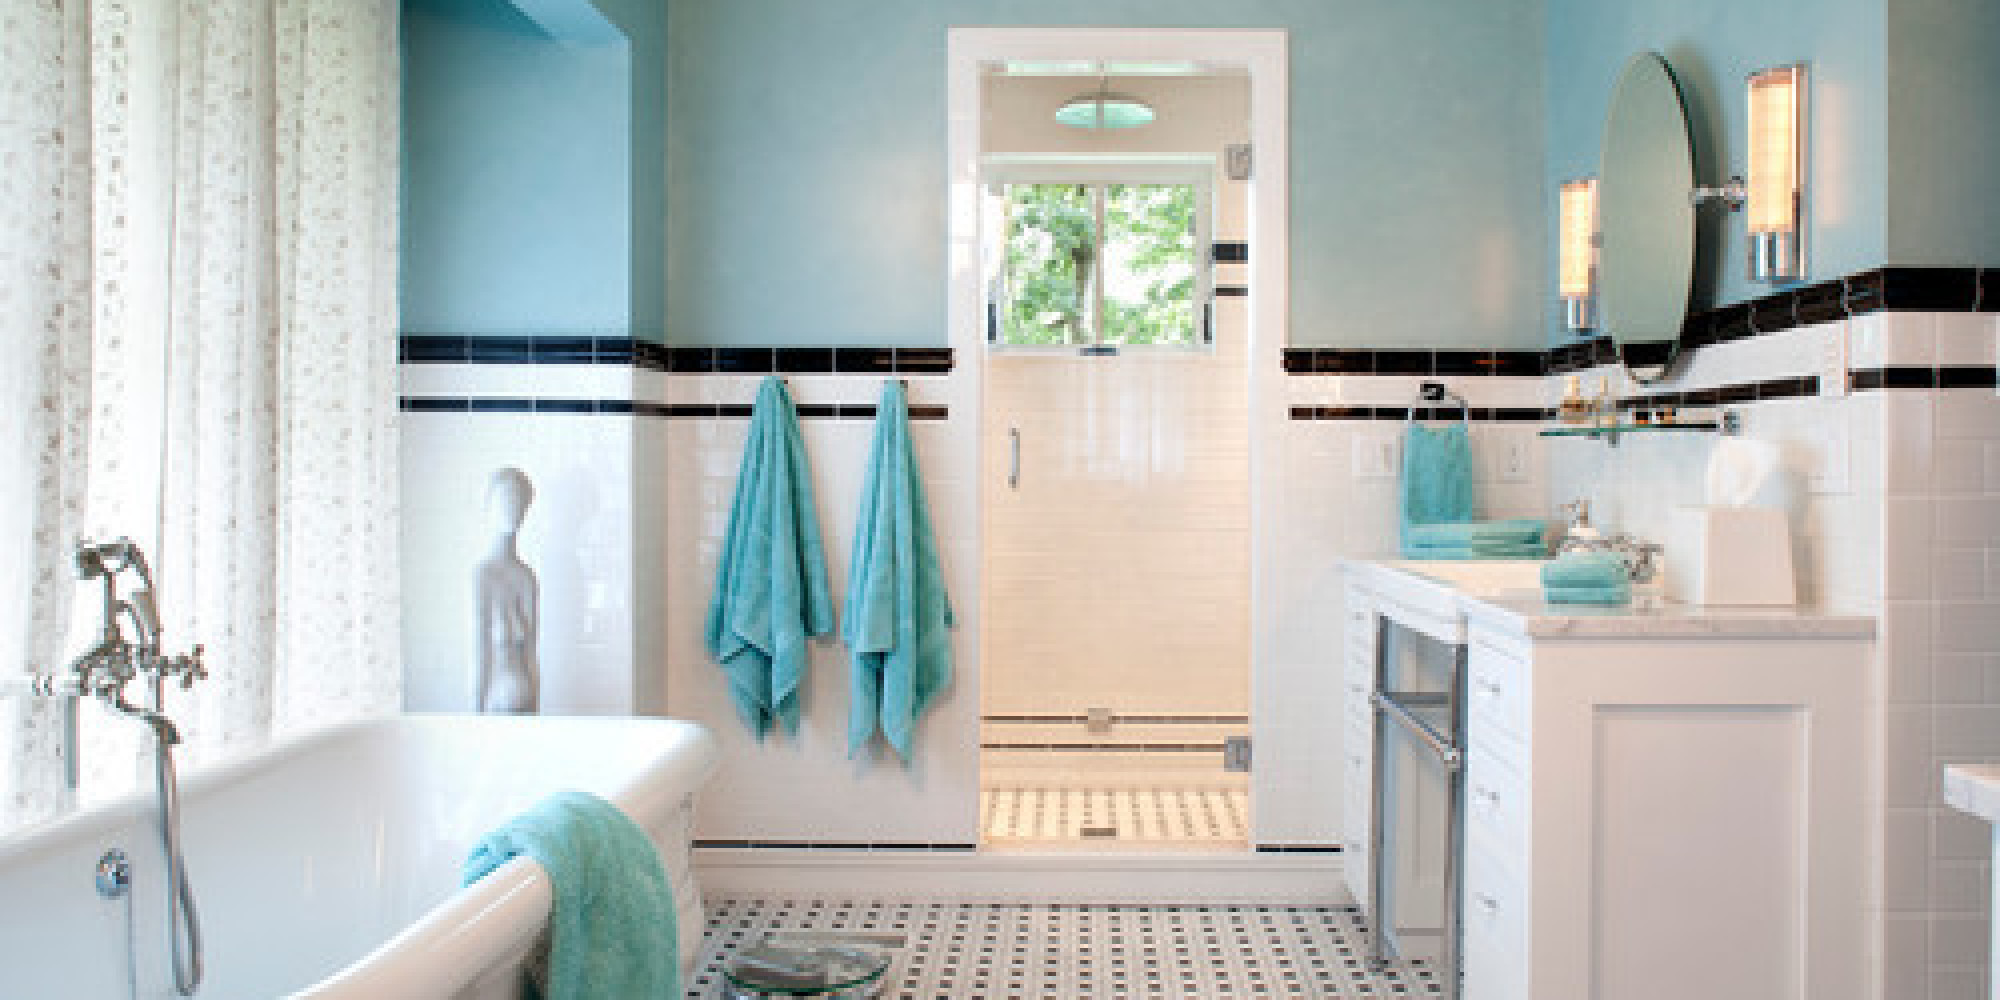 10 Gorgeous Black And White Bathrooms | HuffPost